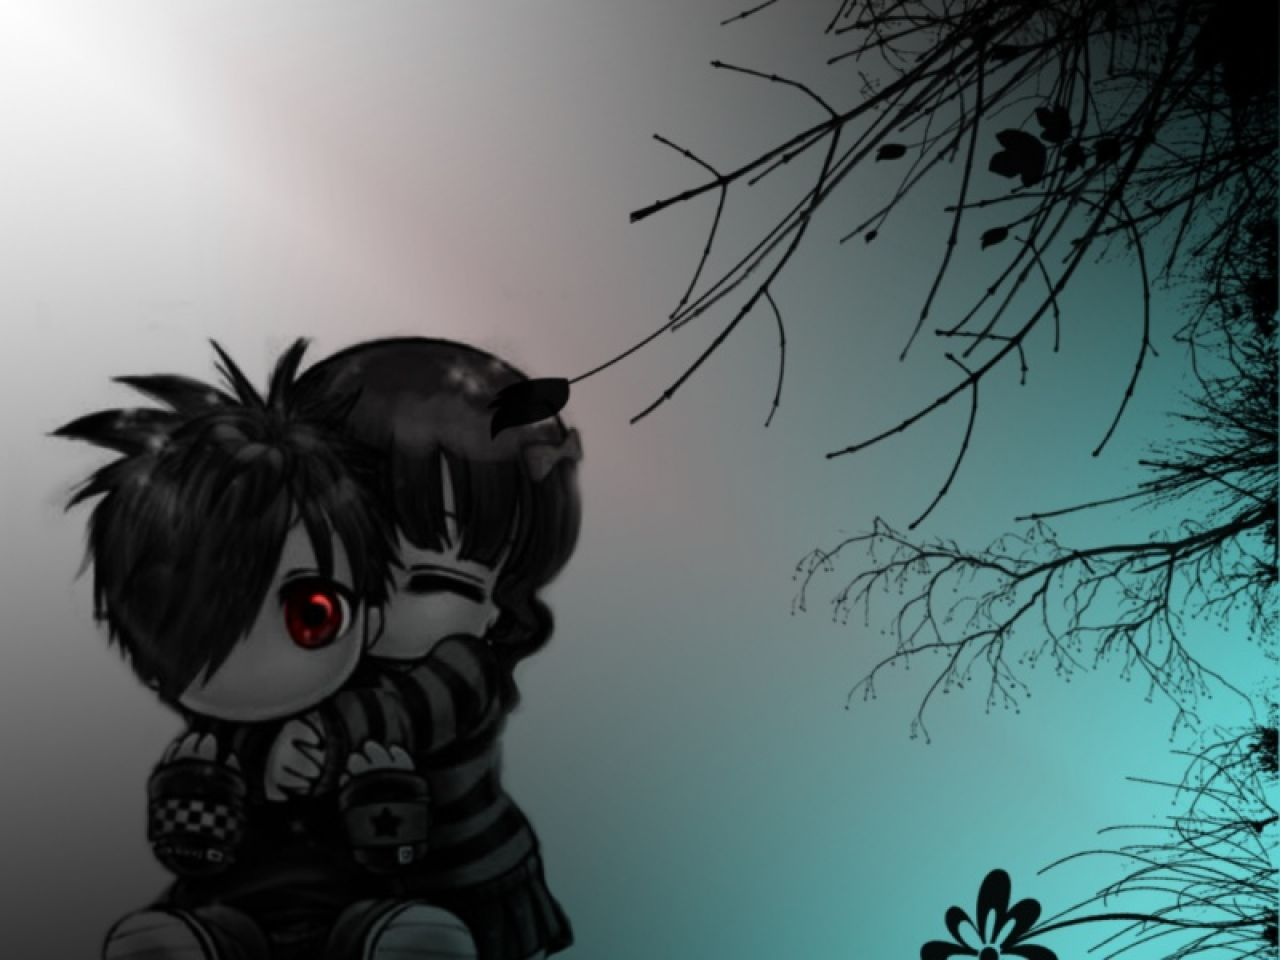 Hd Wallpaper Emo Love couple : Sad Love Anime 32 Free Wallpaper - Hdlovewall.com